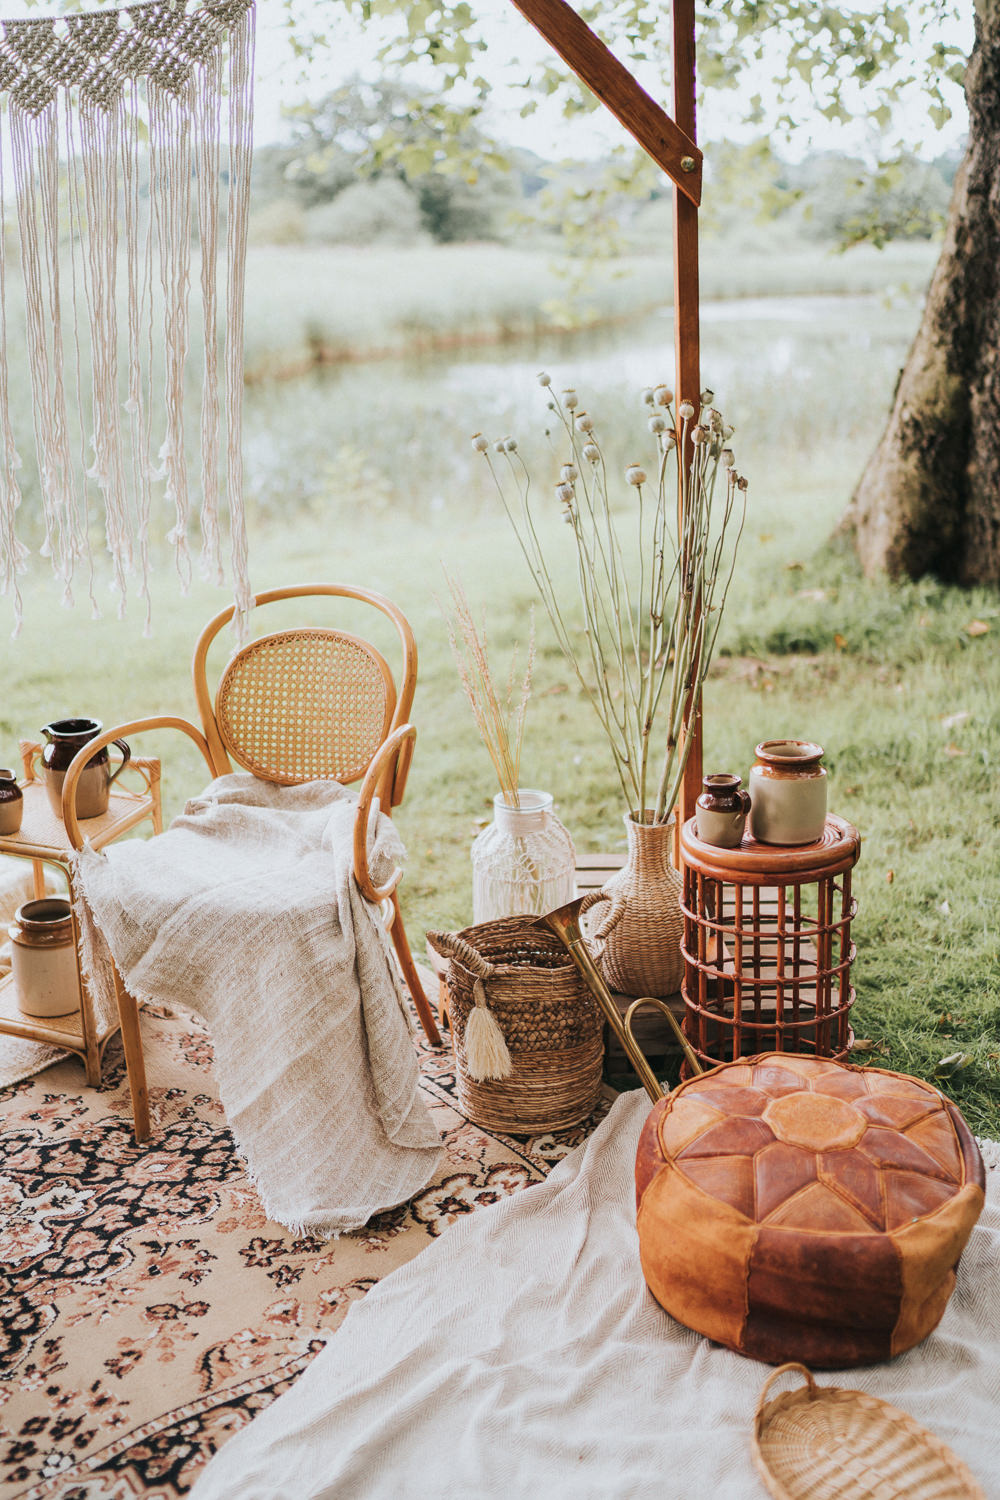 Peacock Chair Macrame Decor Backdrop Frame Pampas Grass Naked Tipi Wedding Ideas Holly Rose Stones